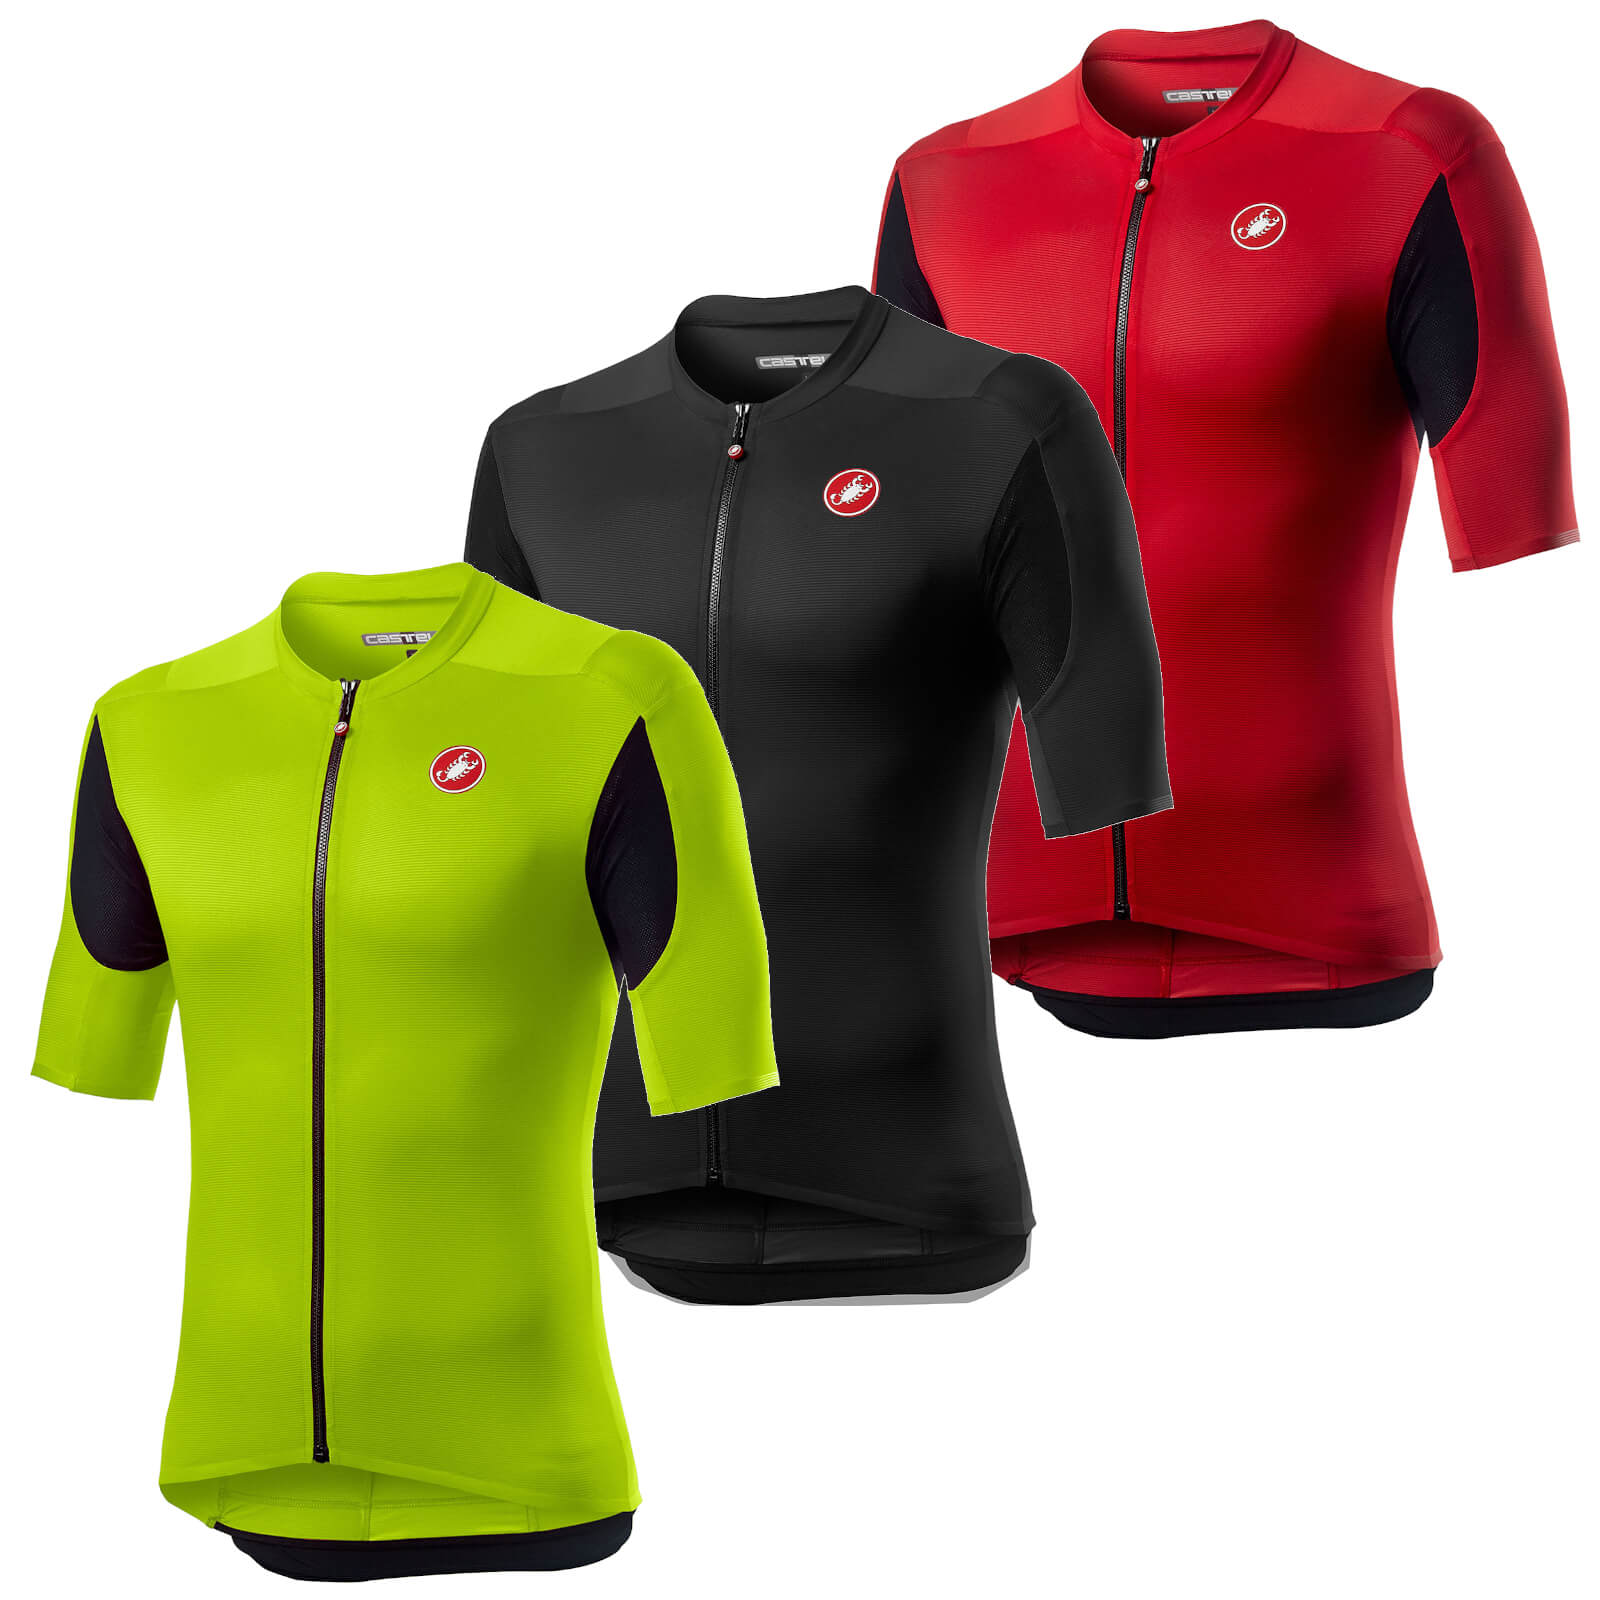 Castelli Superleggera 2 Jersey - M - Light Black